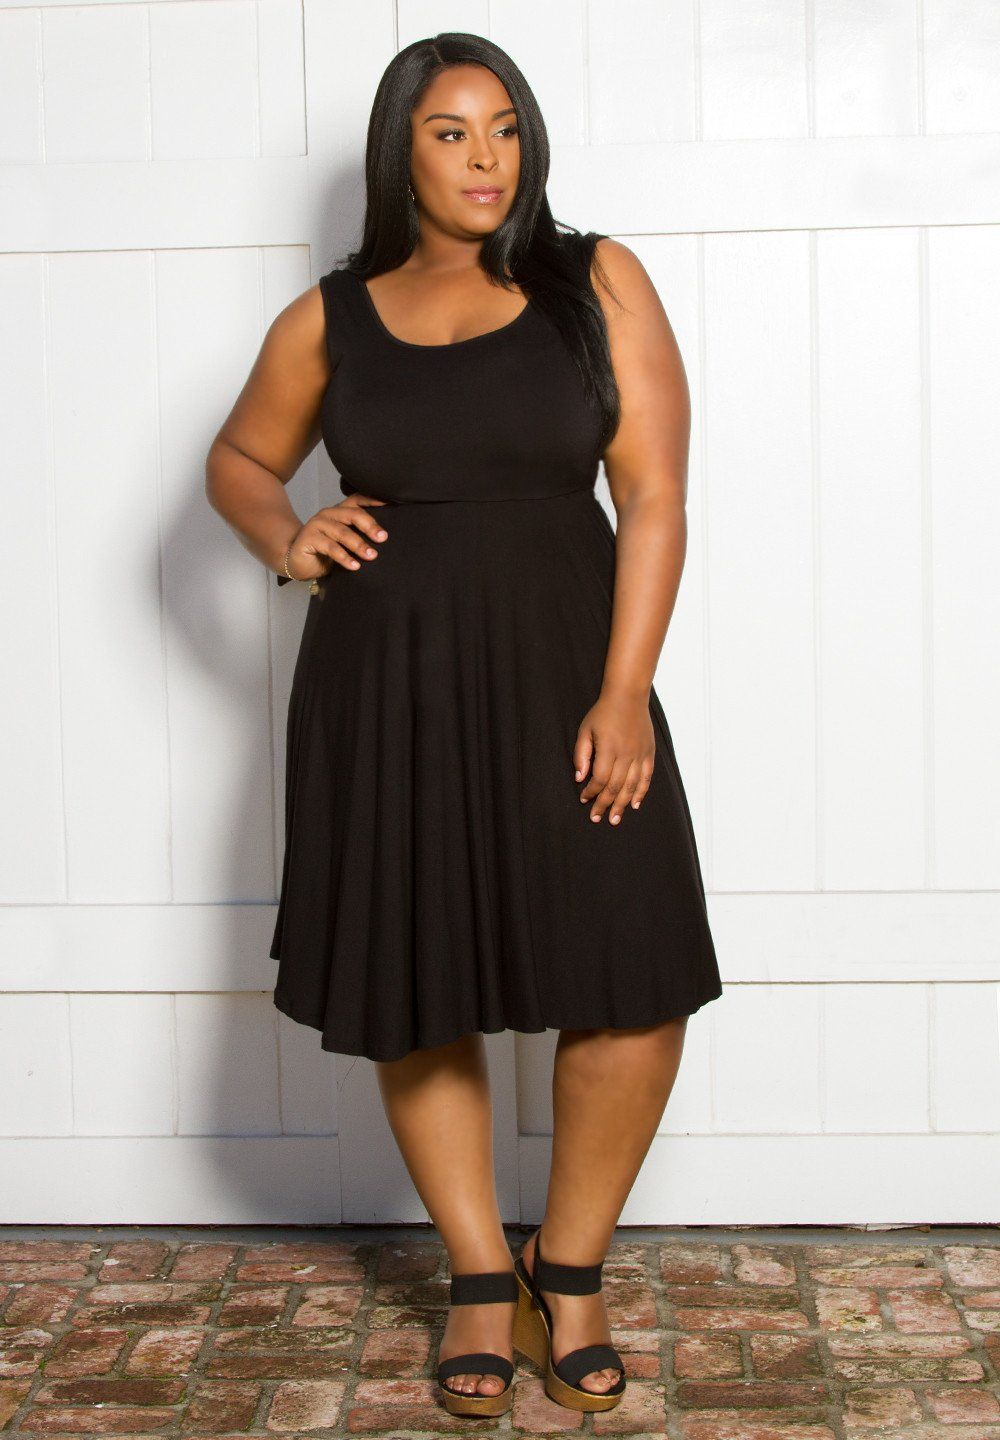 ac2768f2e NEW Plus Size Maggie Tank Dress- Black Shop www.curvaliciousclothes.com